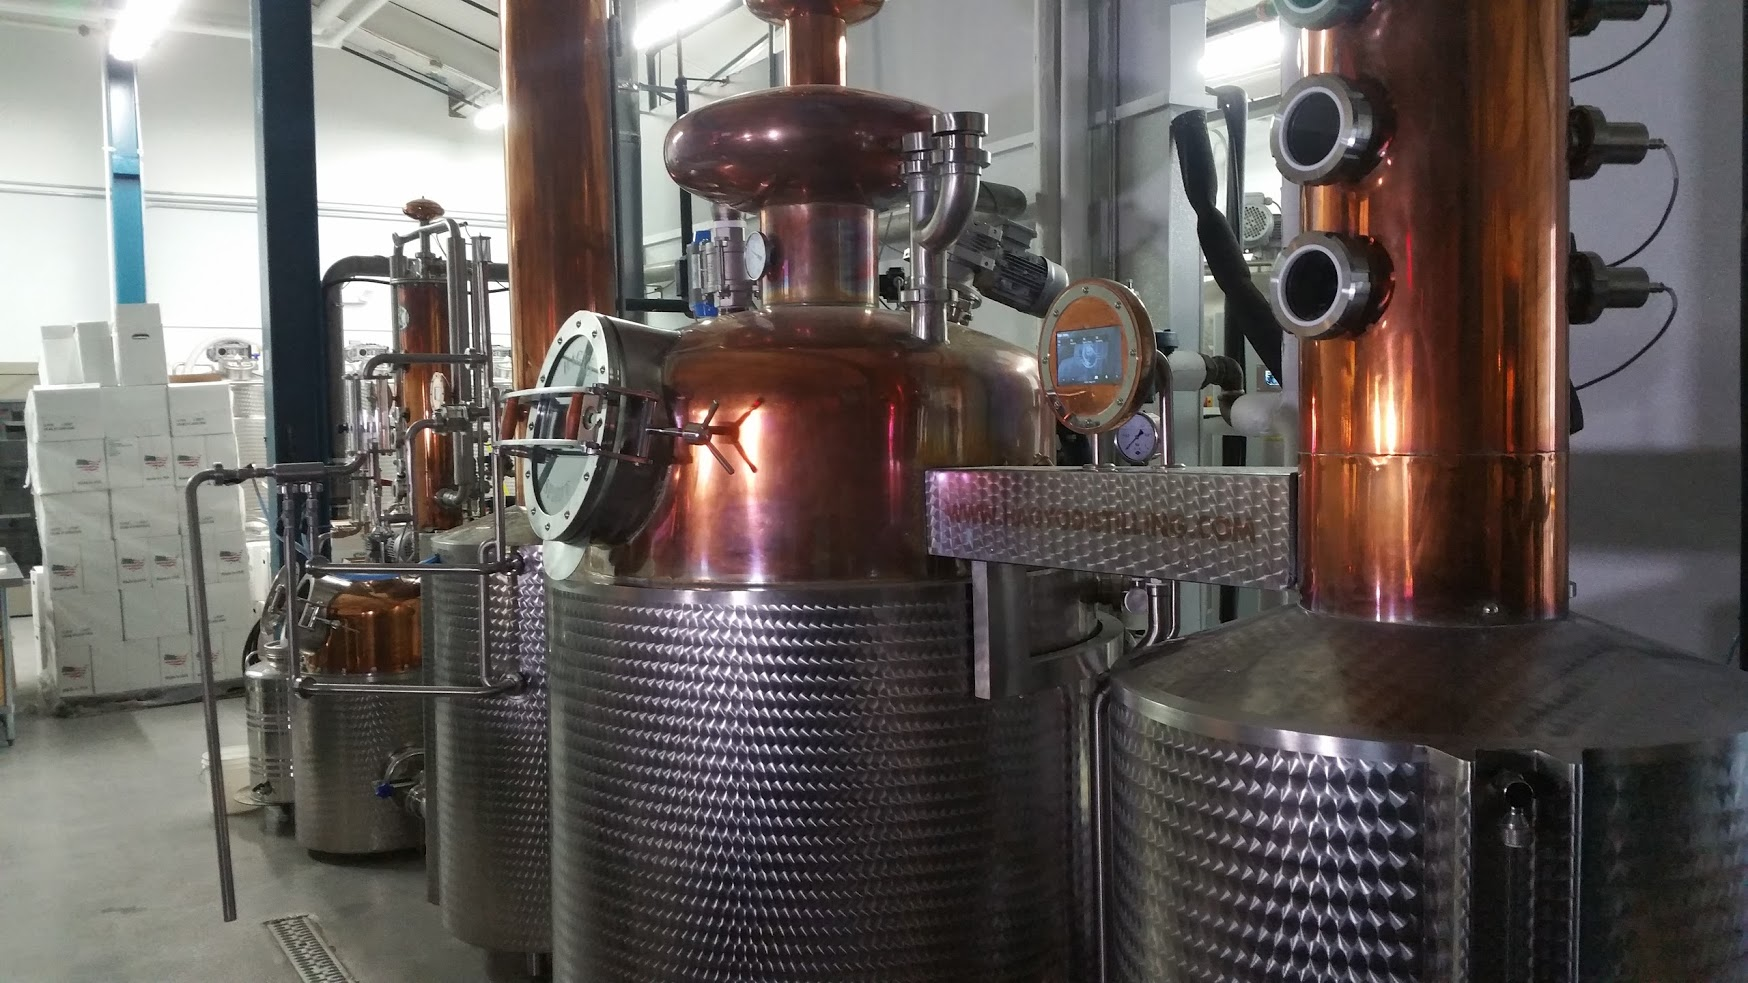 Boardroom features Hagyo stills from Hungary; their distillery is actually the US showroom for this particular model. Other distillers interested in purchasing Hagyo equipment can come to Lansdale to view it in operation and even learn how to use it.